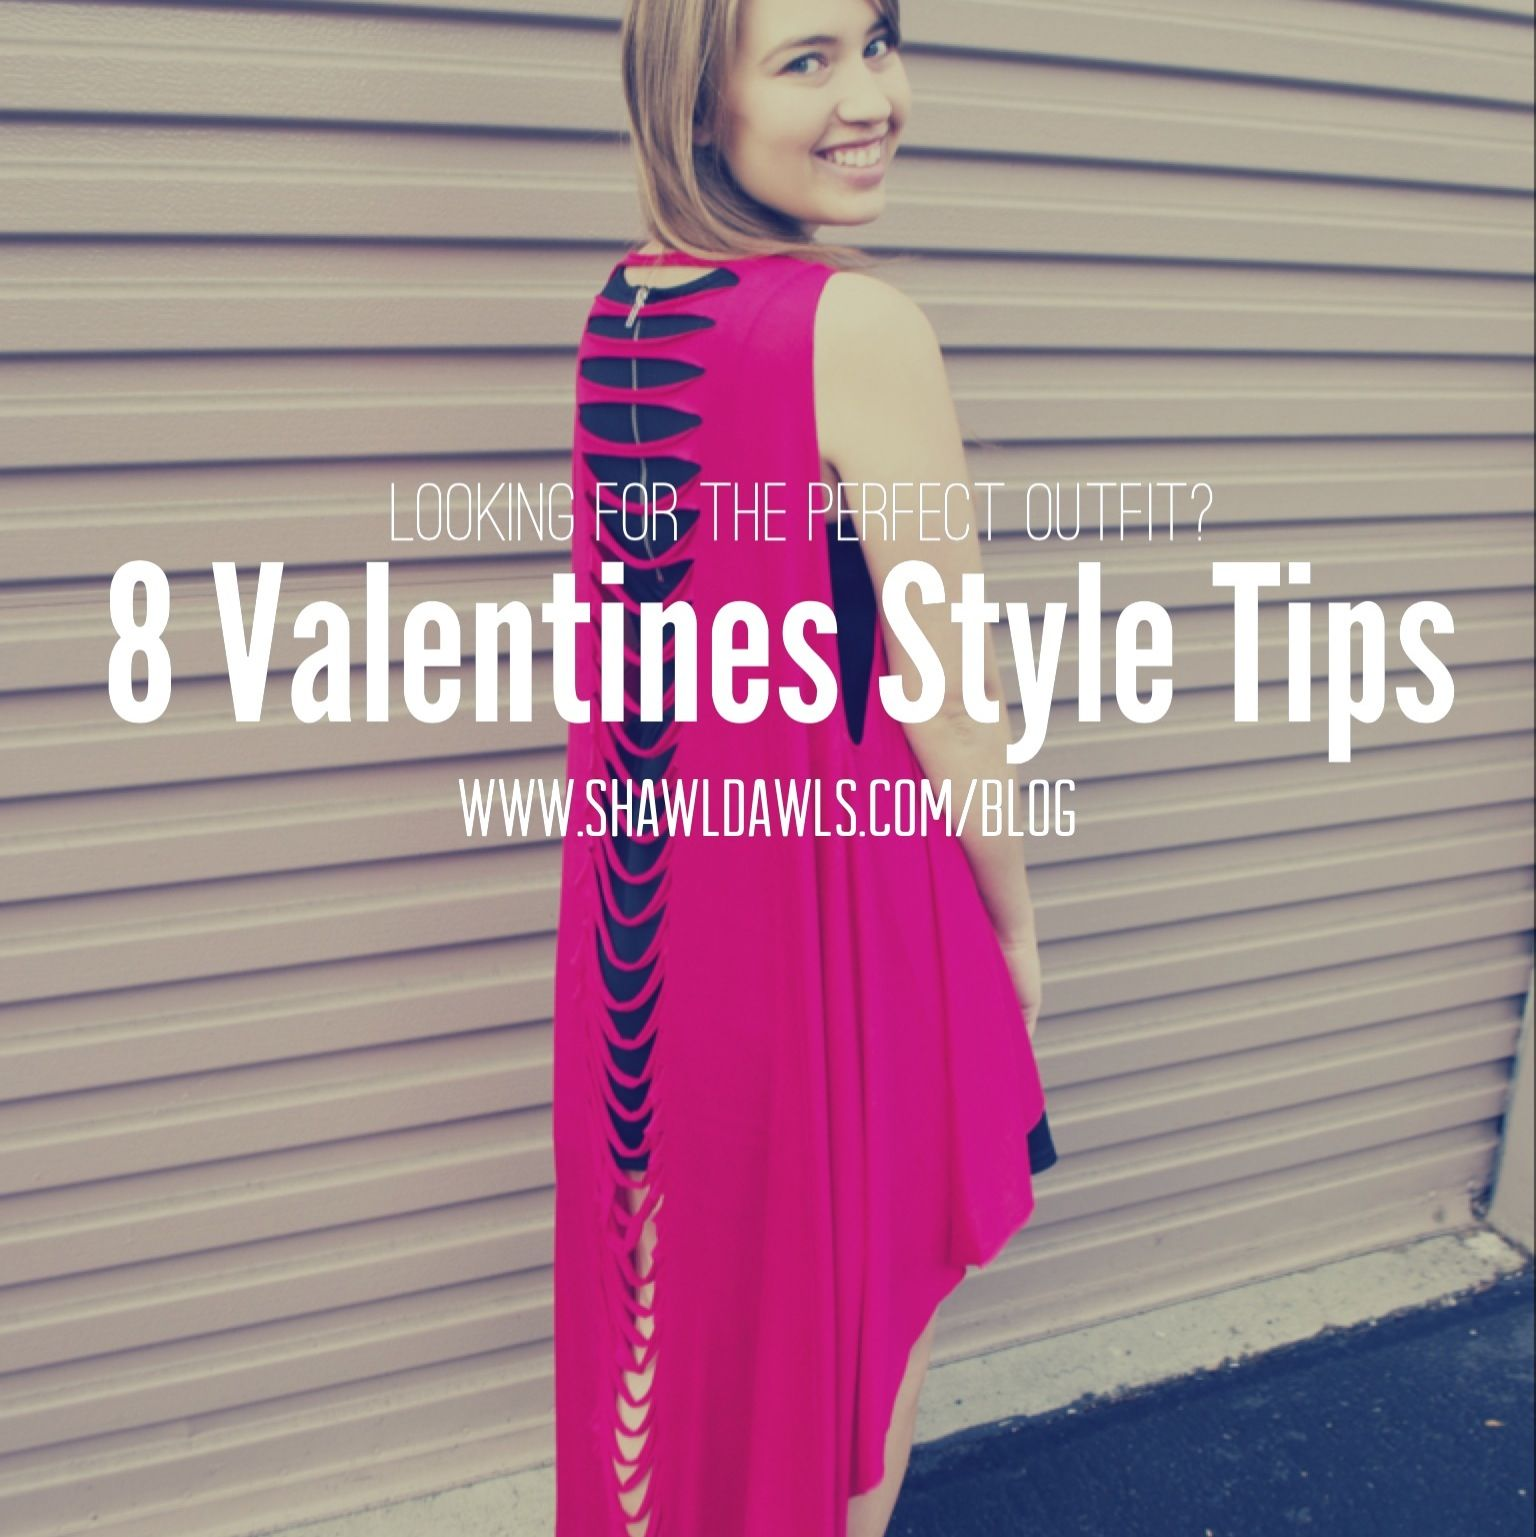 Check out our blog for some cute Valentines-inspired outfit ideas!